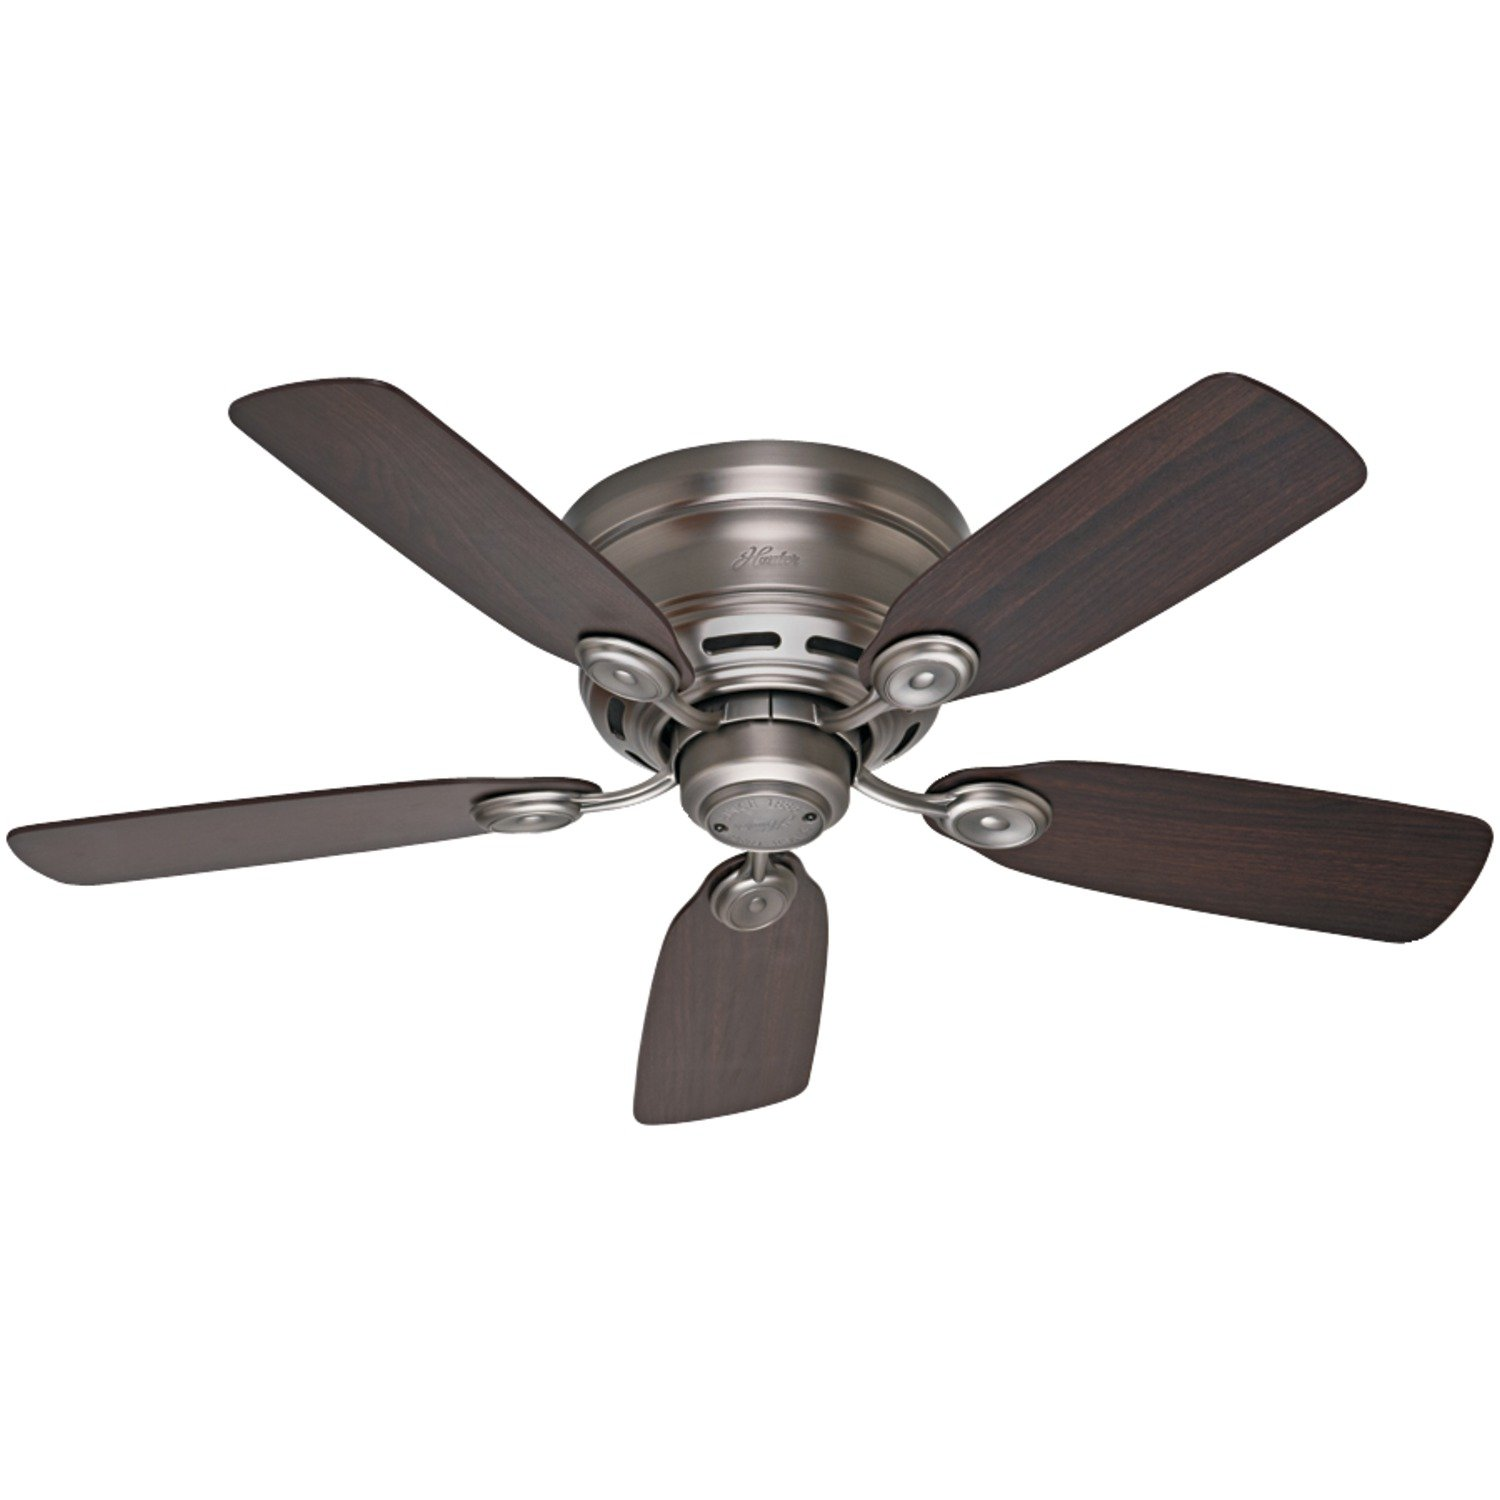 Hunter 51059 low profile iv 5 blade ceiling fan 42 inch white hunter 51059 low profile iv 5 blade ceiling fan 42 inch white amazon aloadofball Image collections